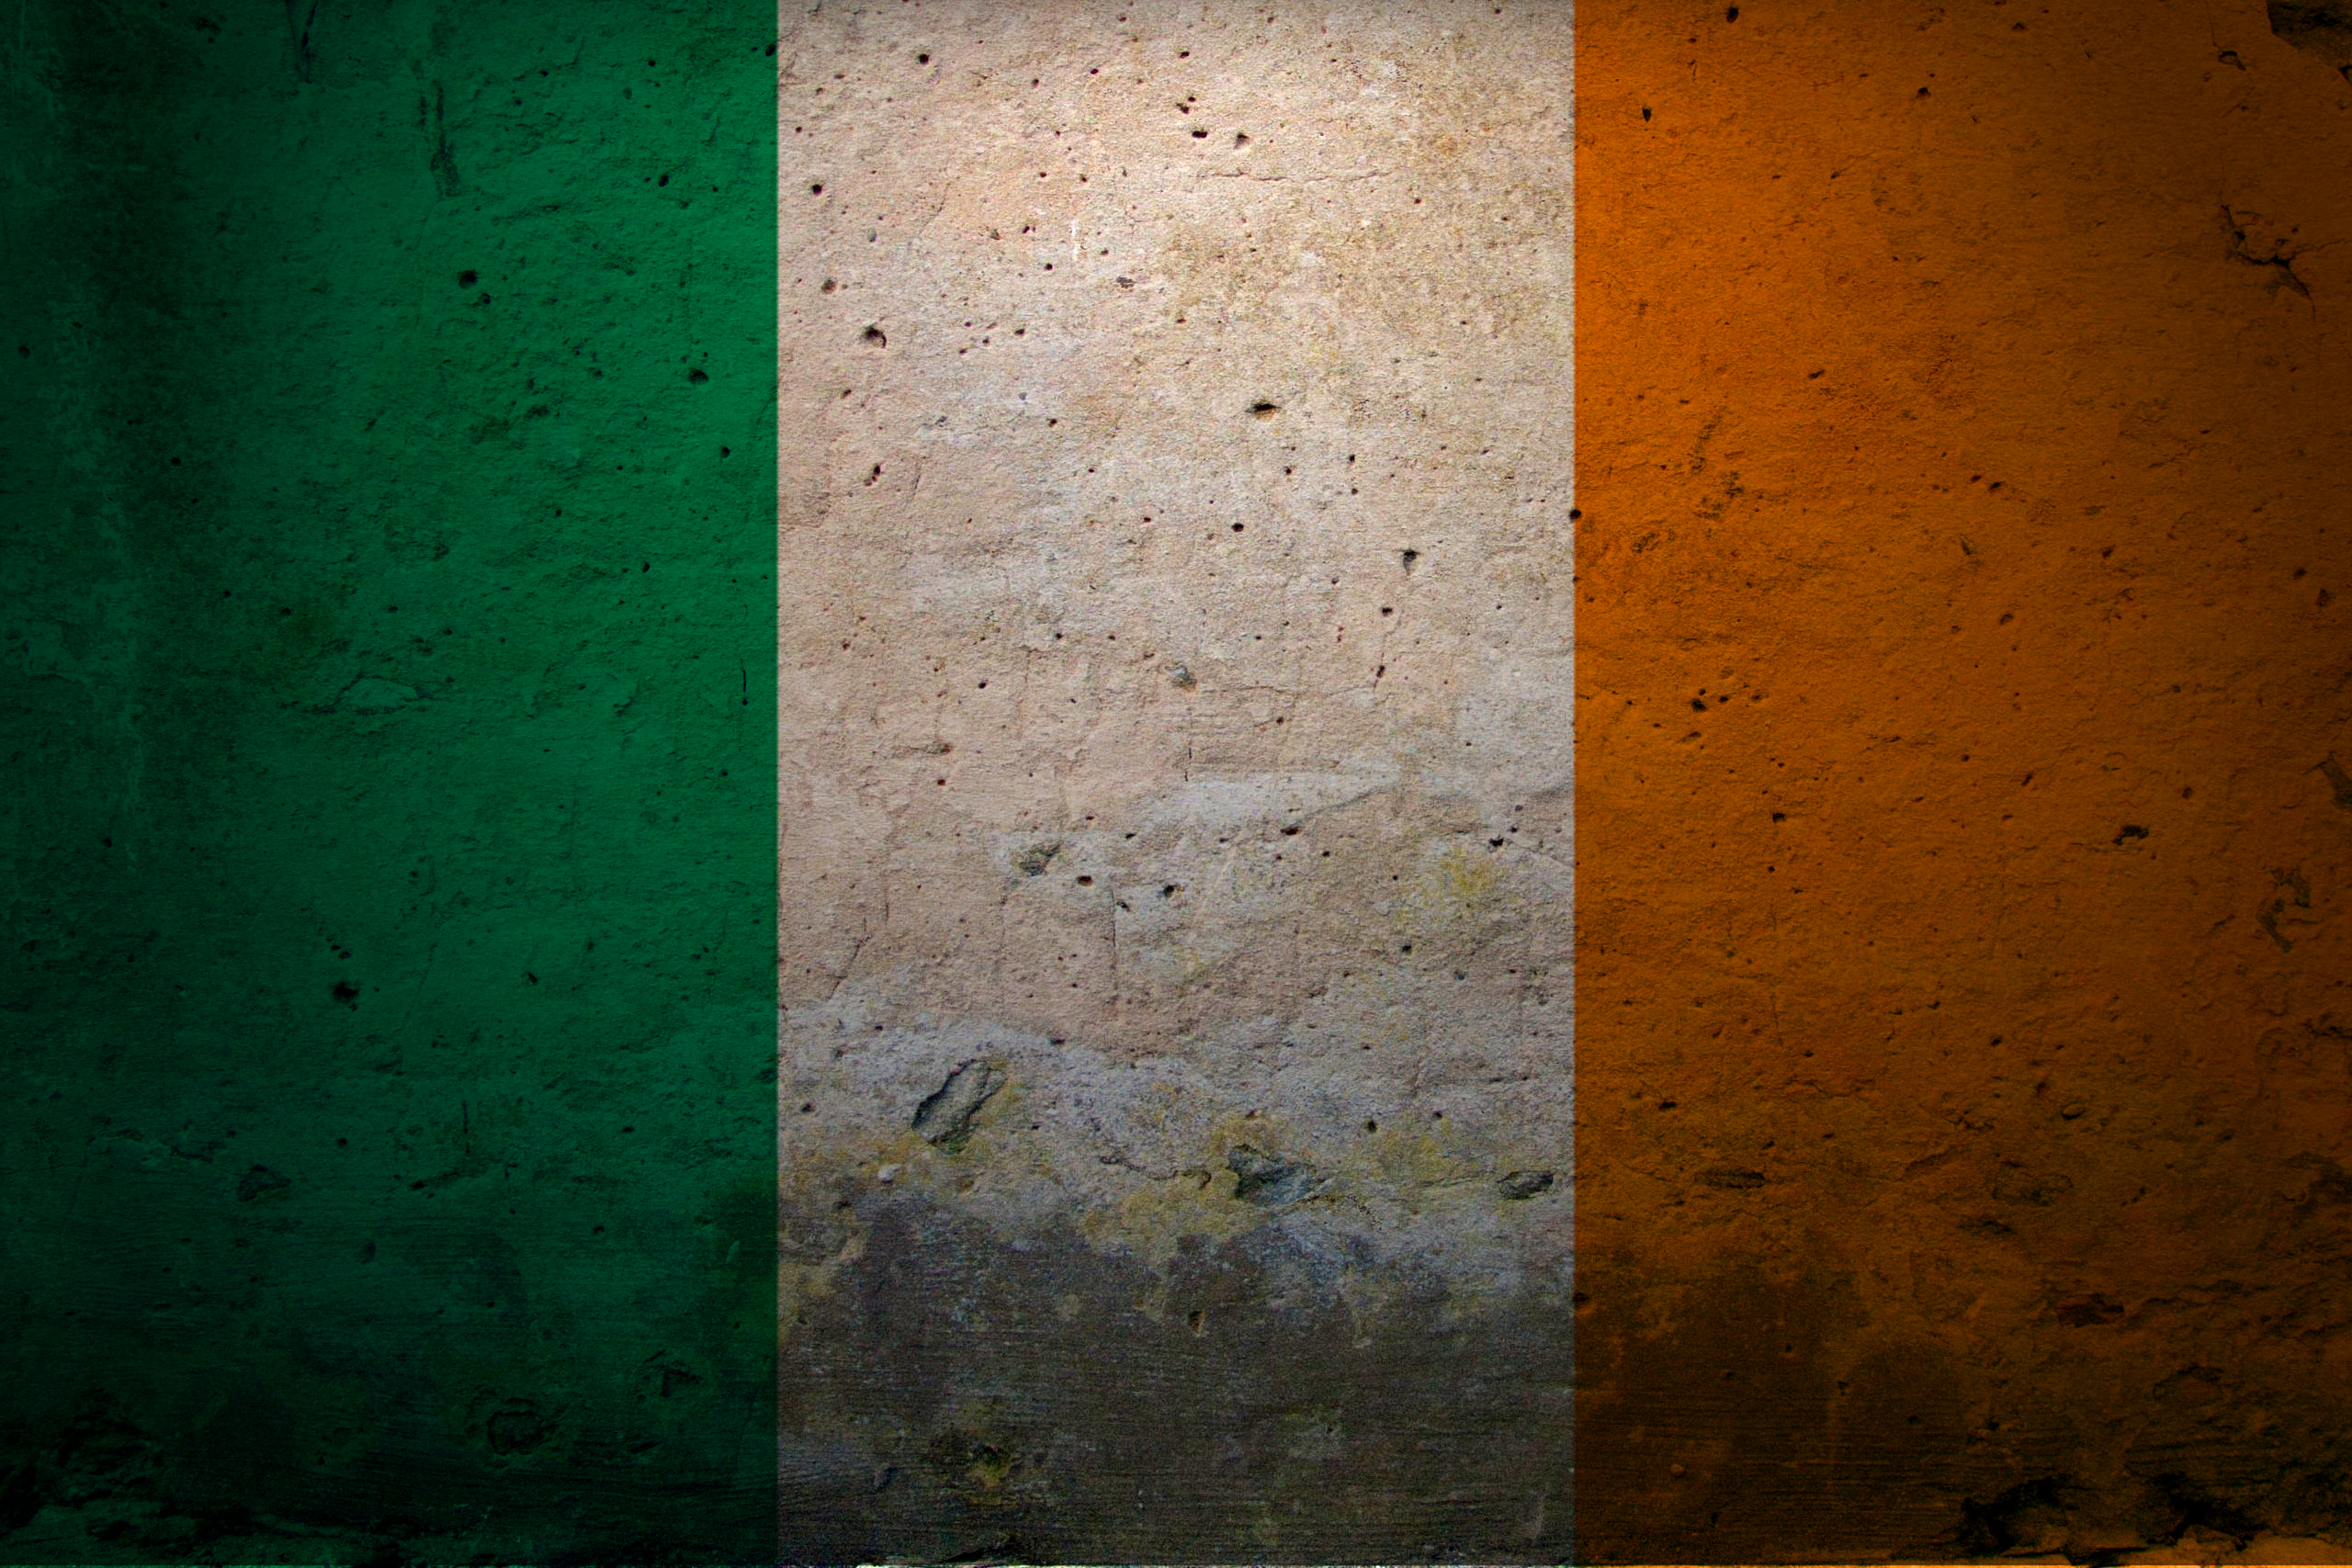 Flag Of Ireland Full HD Wallpaper And Background